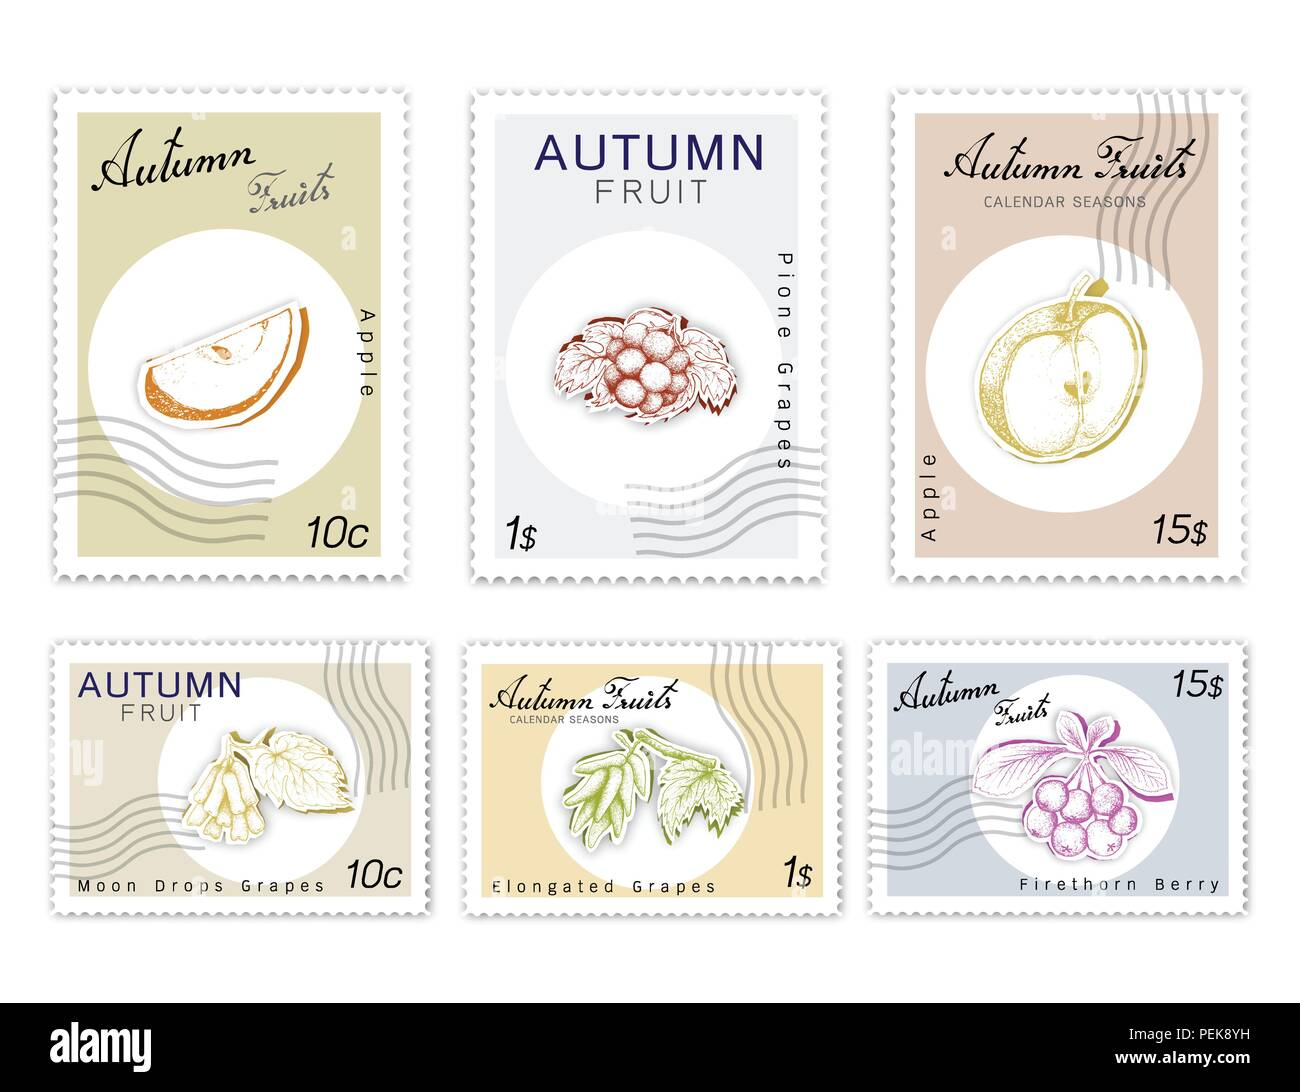 Autumn Fruits, Post Stamps Set of Hand Drawn Sketch Elongated or Witch Fingers Grapes with Moon Drops, Pione Grapes, Apple and Firethorn Berries in Or Stock Vector